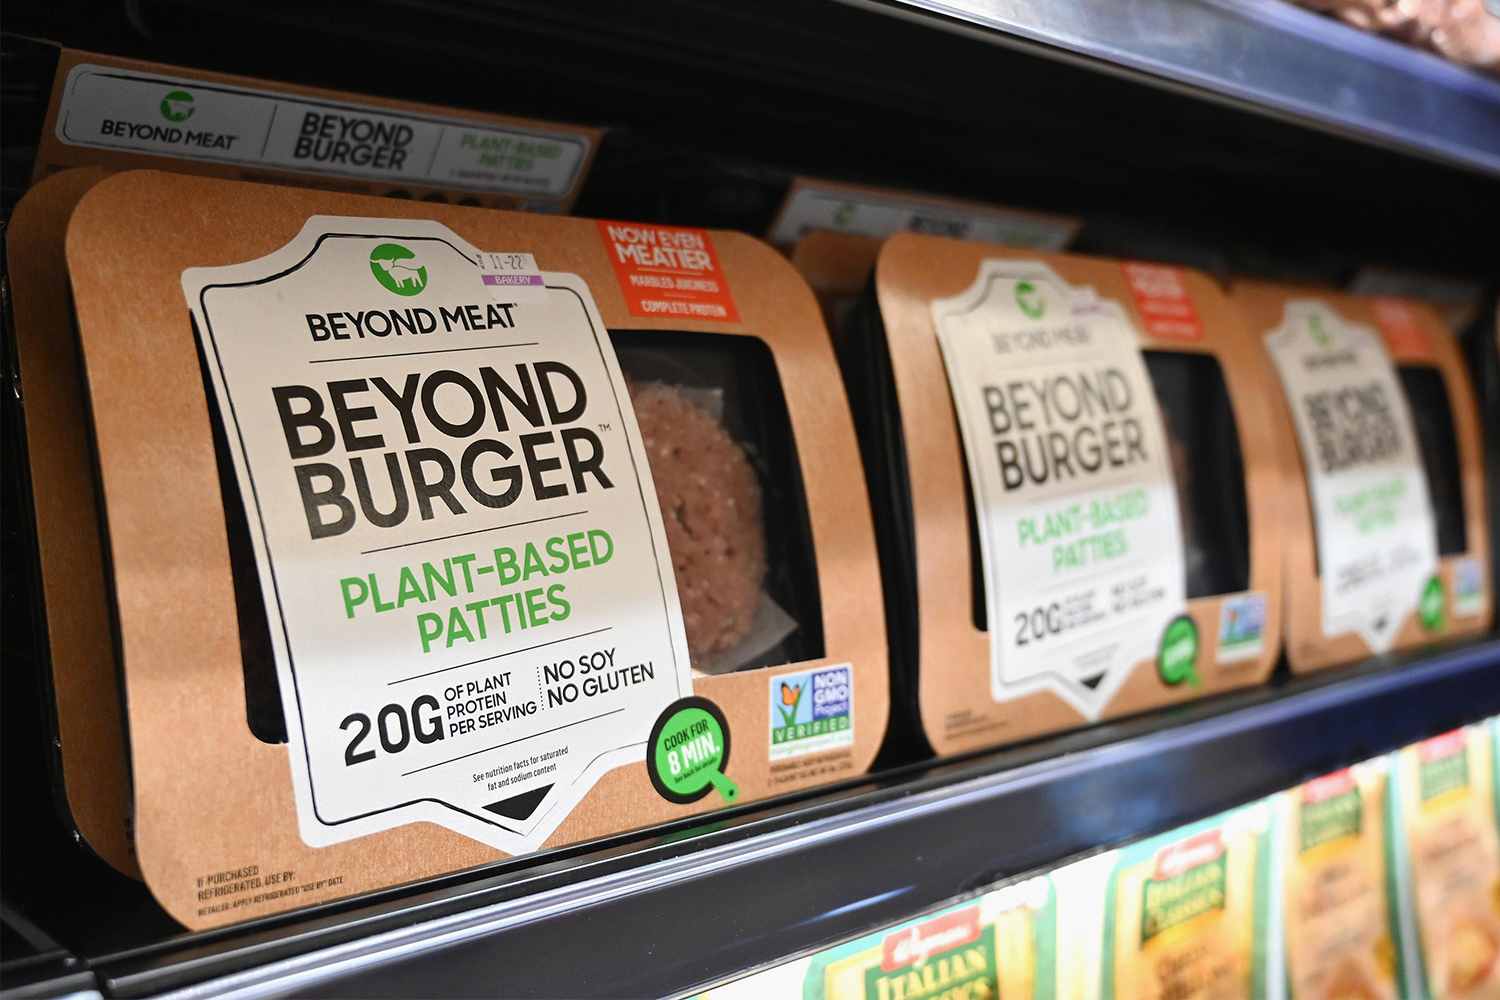 Beyond Burgers from plant-based company Beyond Meat